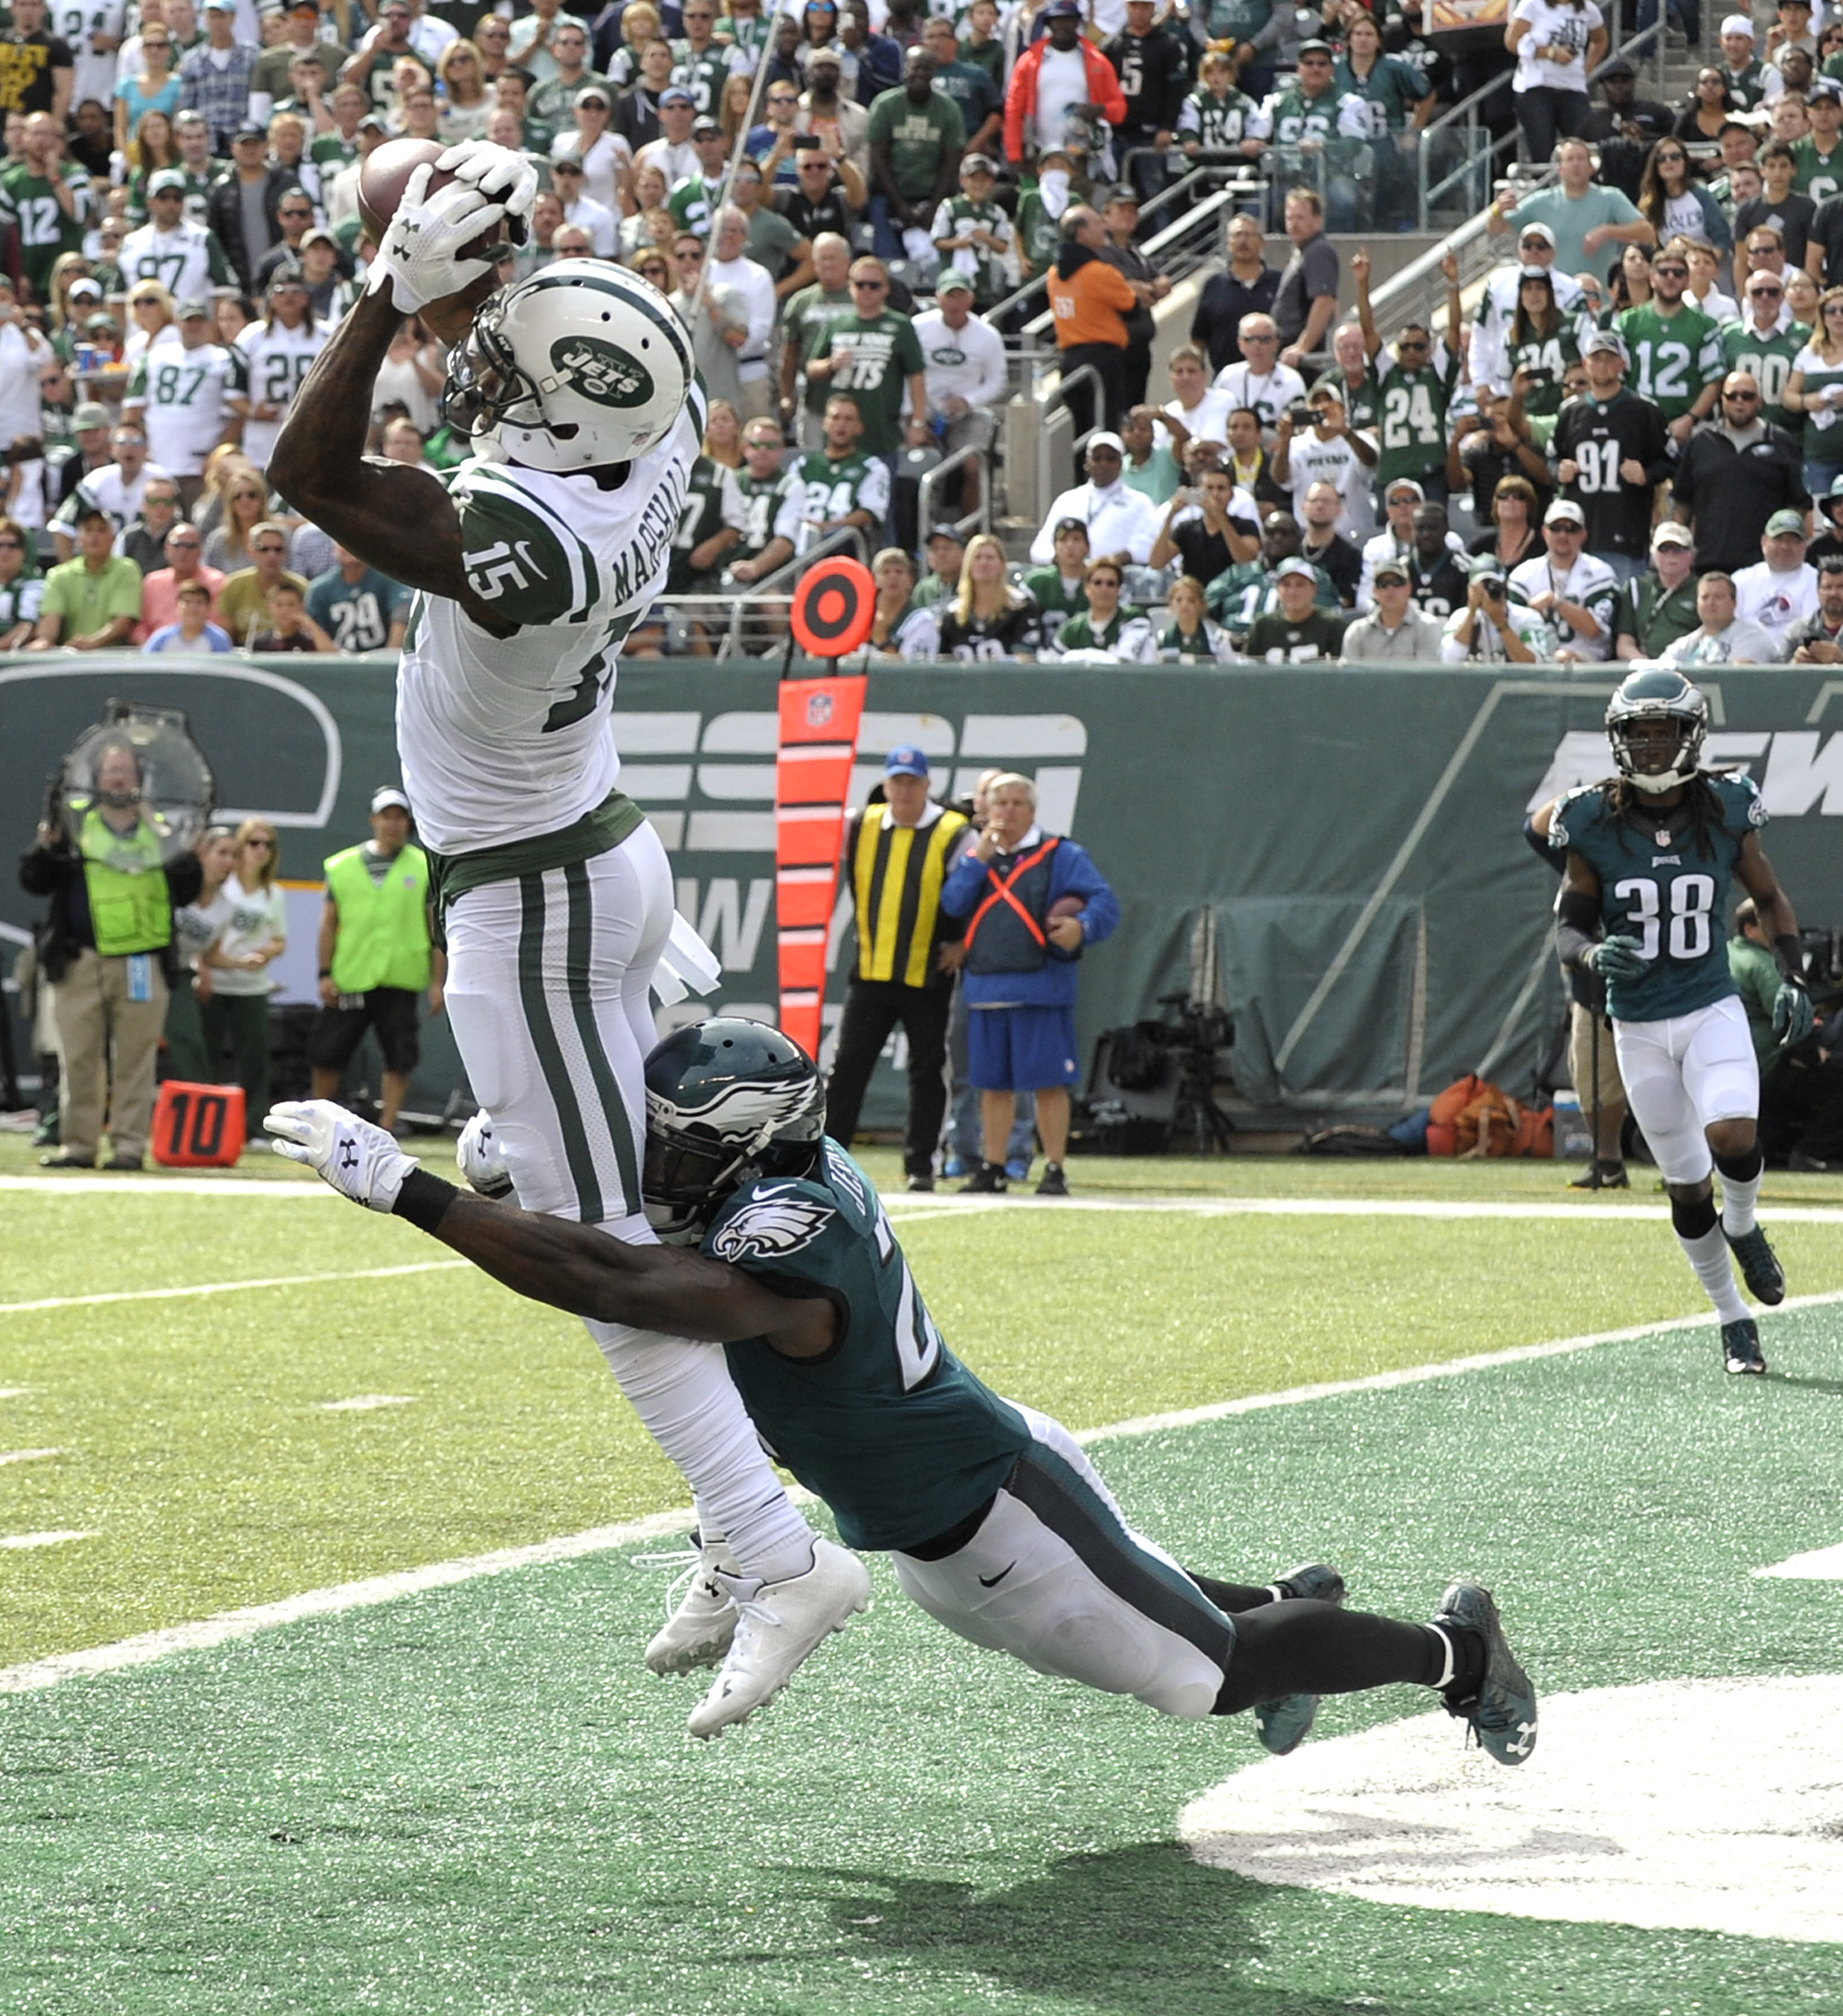 New York Jets wide receiver Brandon Marshall (15) makes a touchdown catch defended by Philadelphia Eagles free safety Malcolm Jenkins (27) during the second quarter of an NFL football game, Sunday, Sept. 27, 2015, in East Rutherford, N.J. (AP Photo/Bill K